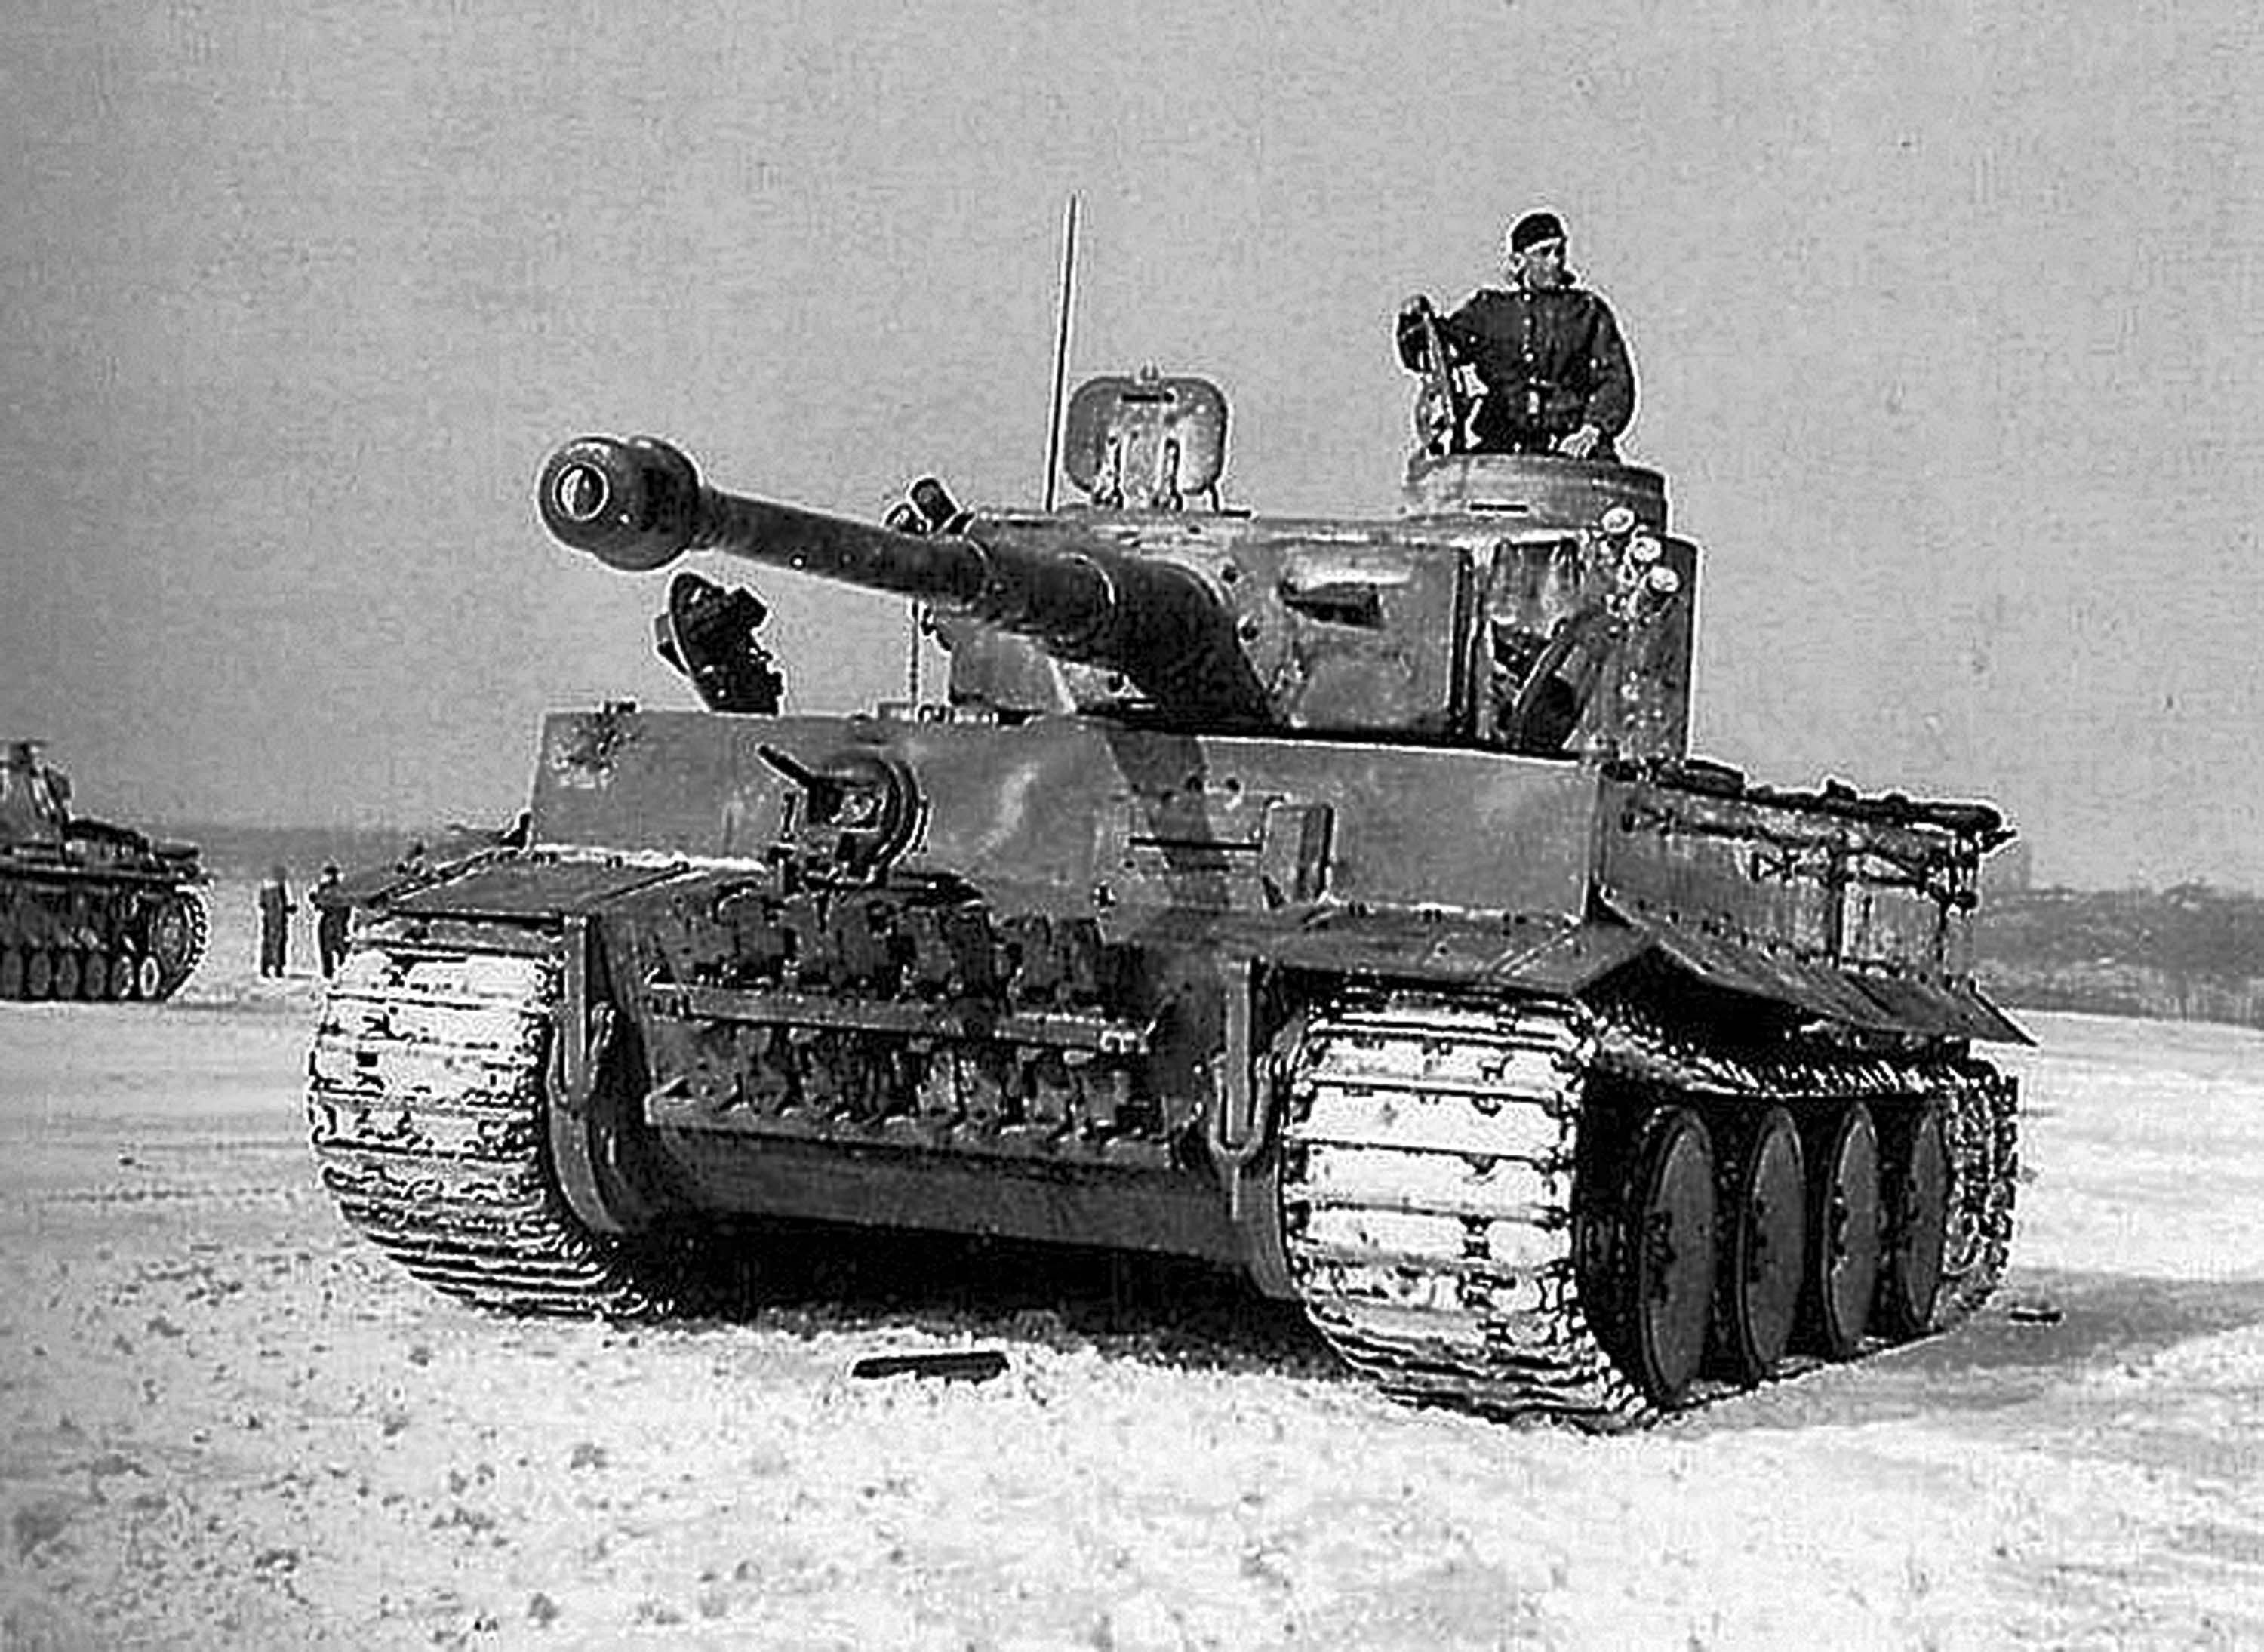 a tiger 1 in winter conditions tiger tanks tiger tank. Black Bedroom Furniture Sets. Home Design Ideas